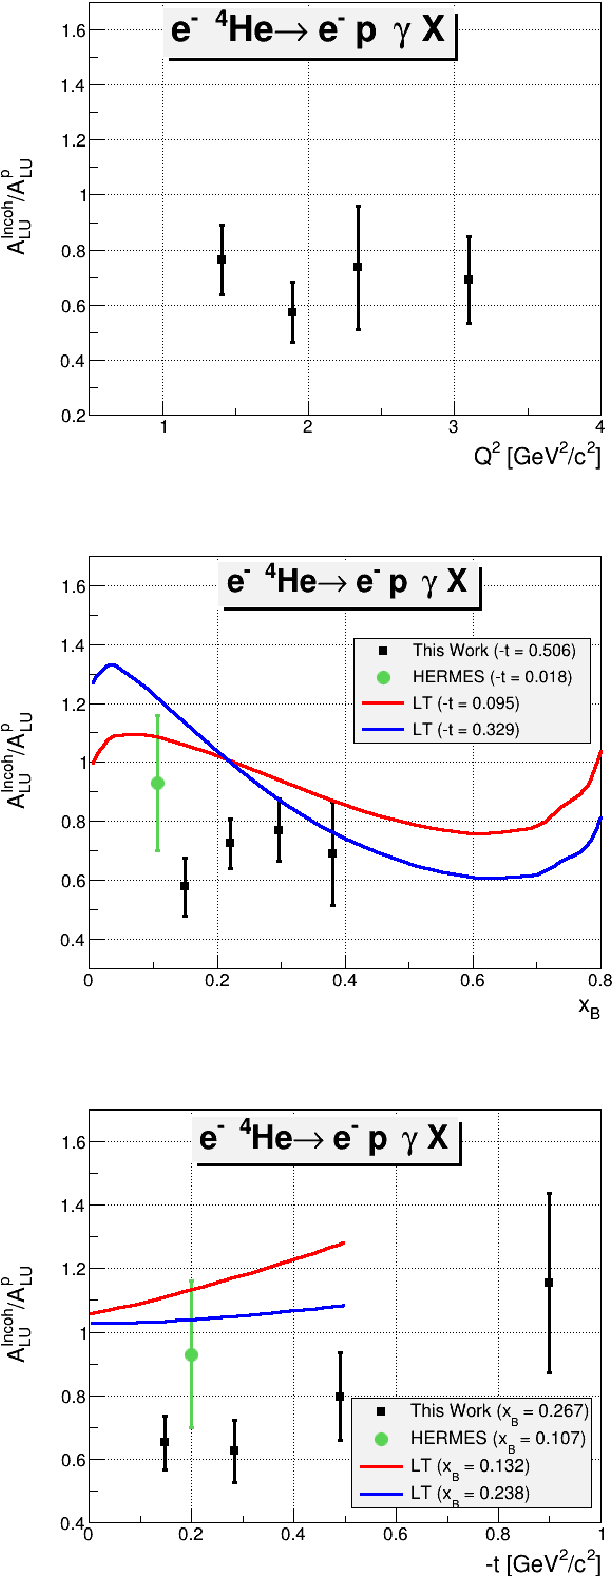 Figure 6.8: The ALU ratio between the bound and the free proton at φ = 90◦, as a function of Q2 (on the top), xB (on the middle), and t (on the bottom). The green point in each plot present the HERMES inclusive measurement [96]. In the middle plot: the red and the blue curves are from the model of S. Liuti and K. Taneja [94] at two values of −t, 0.095 and 0.329 GeV2/c2, respectively. In the bottom plot: the red and the blue curves are the theoretical predictions from the same model at xB= 0.132 and 0.238, respectively.